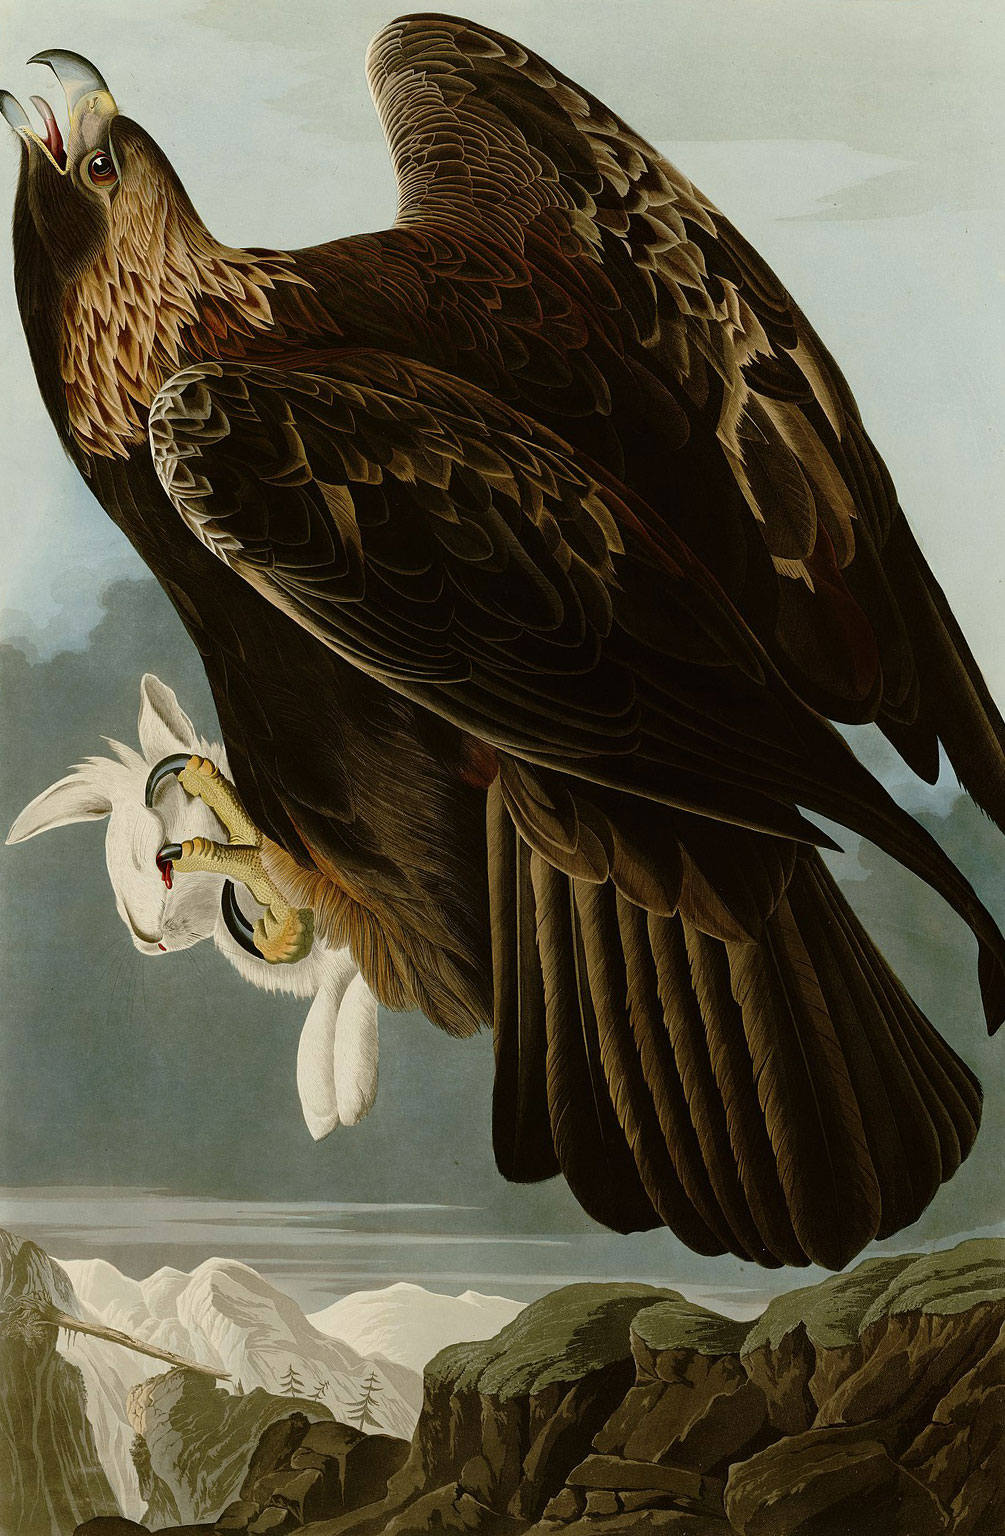 Plate 181 of The Birds of America by Audubon depicting a golden eagle, 1833–34.